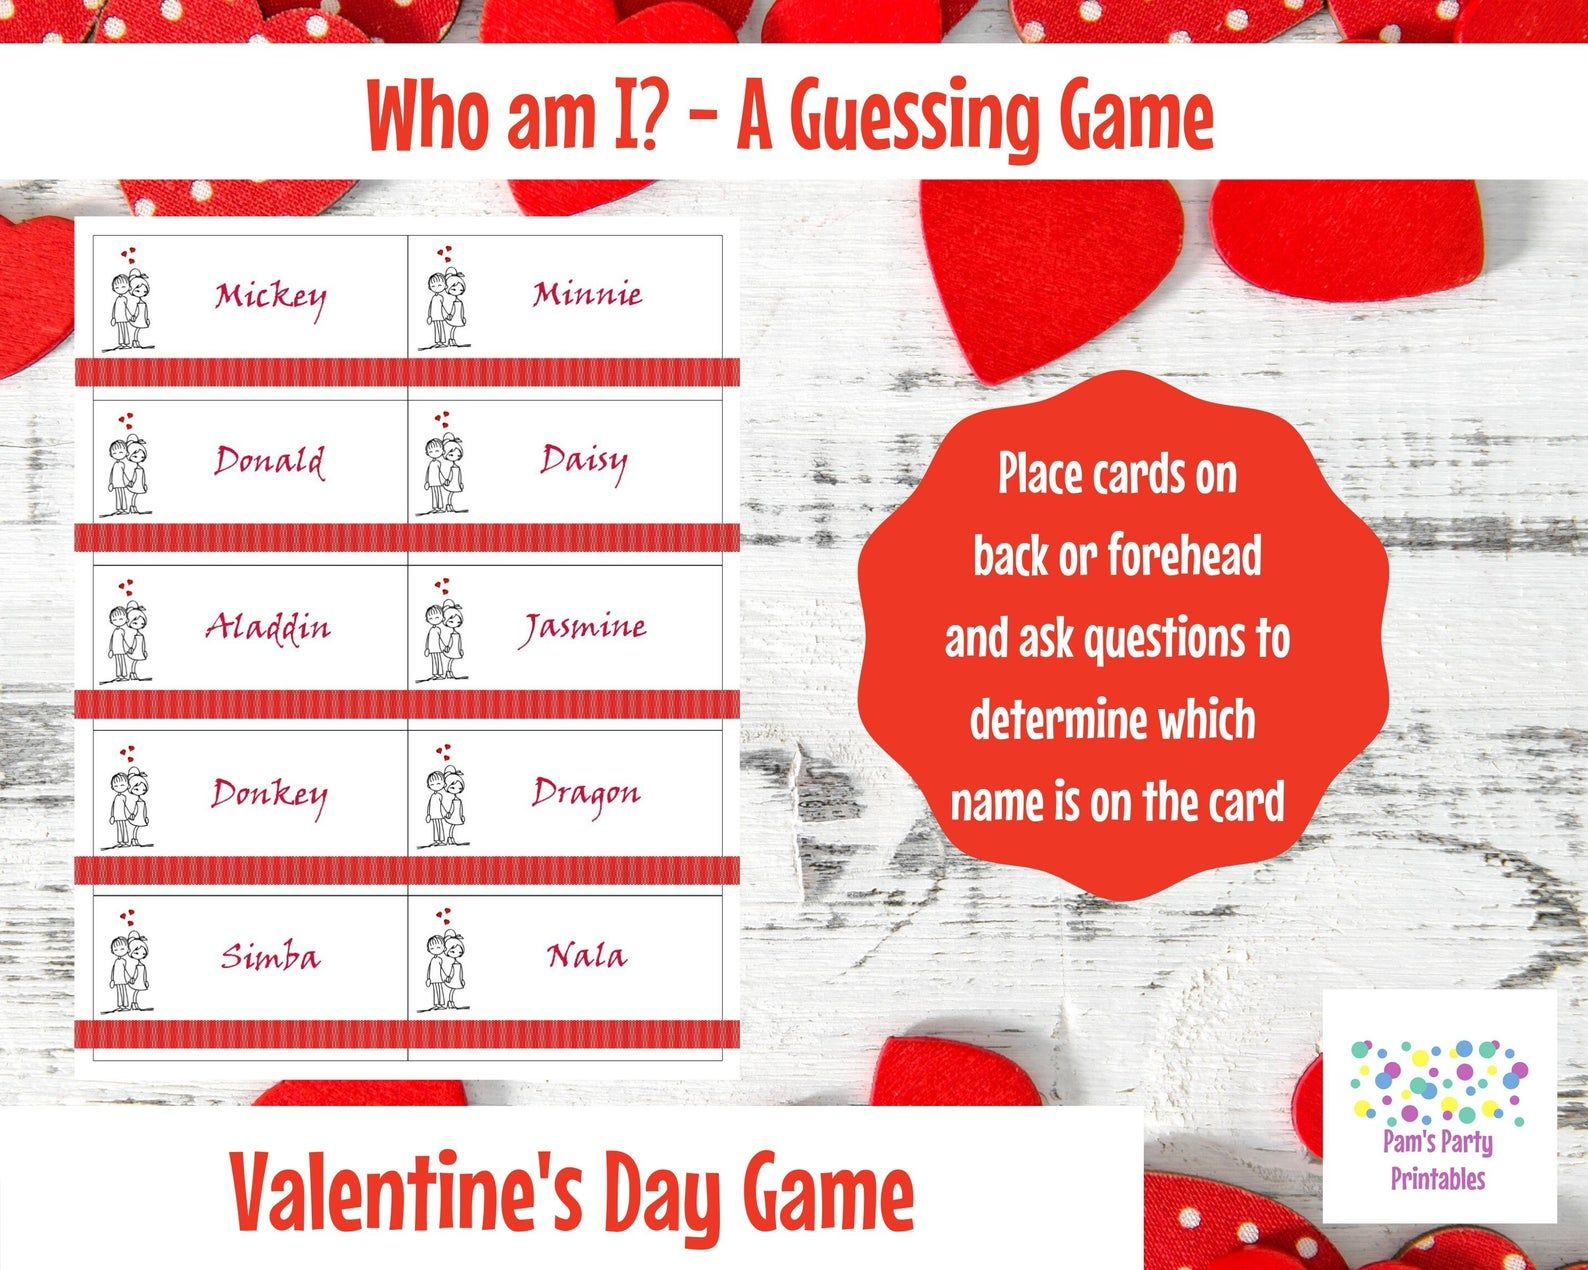 Who Am I Cartoon Couples Printable Game Hedbanz Etsy in